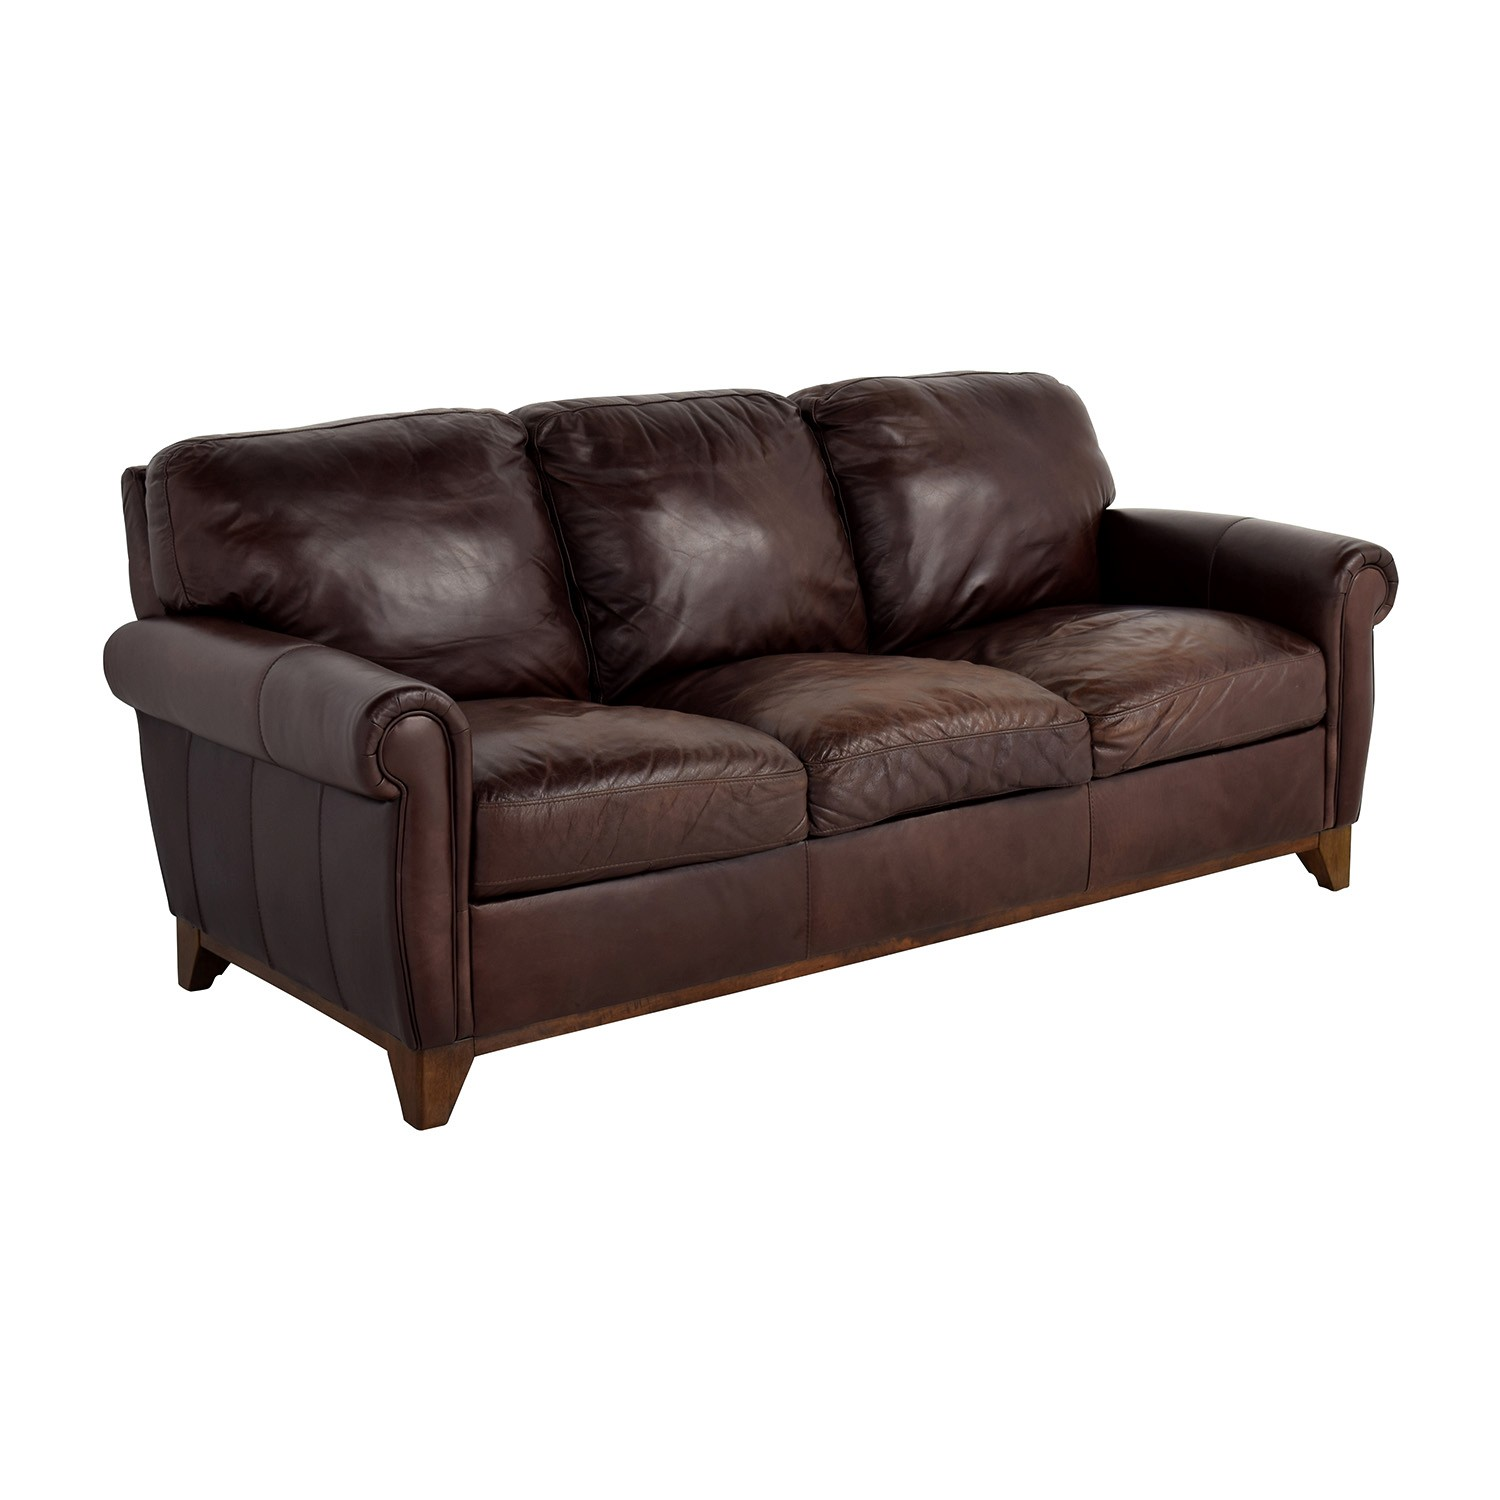 Raymour and Flanigan Leather sofa Contemporary Raymour and Flanigan Leather sofa Staggering Inspirations Photograph